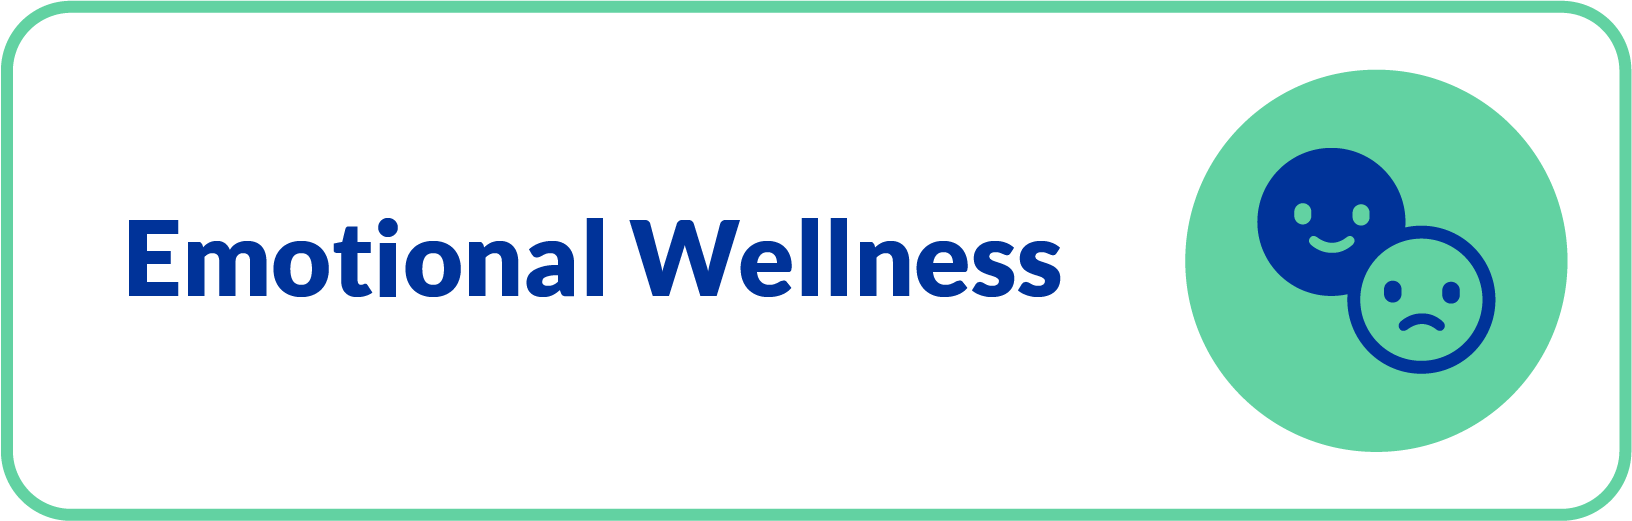 Emotional wellness is about understanding and accepting emotions and is driven by daily balance and resilience.